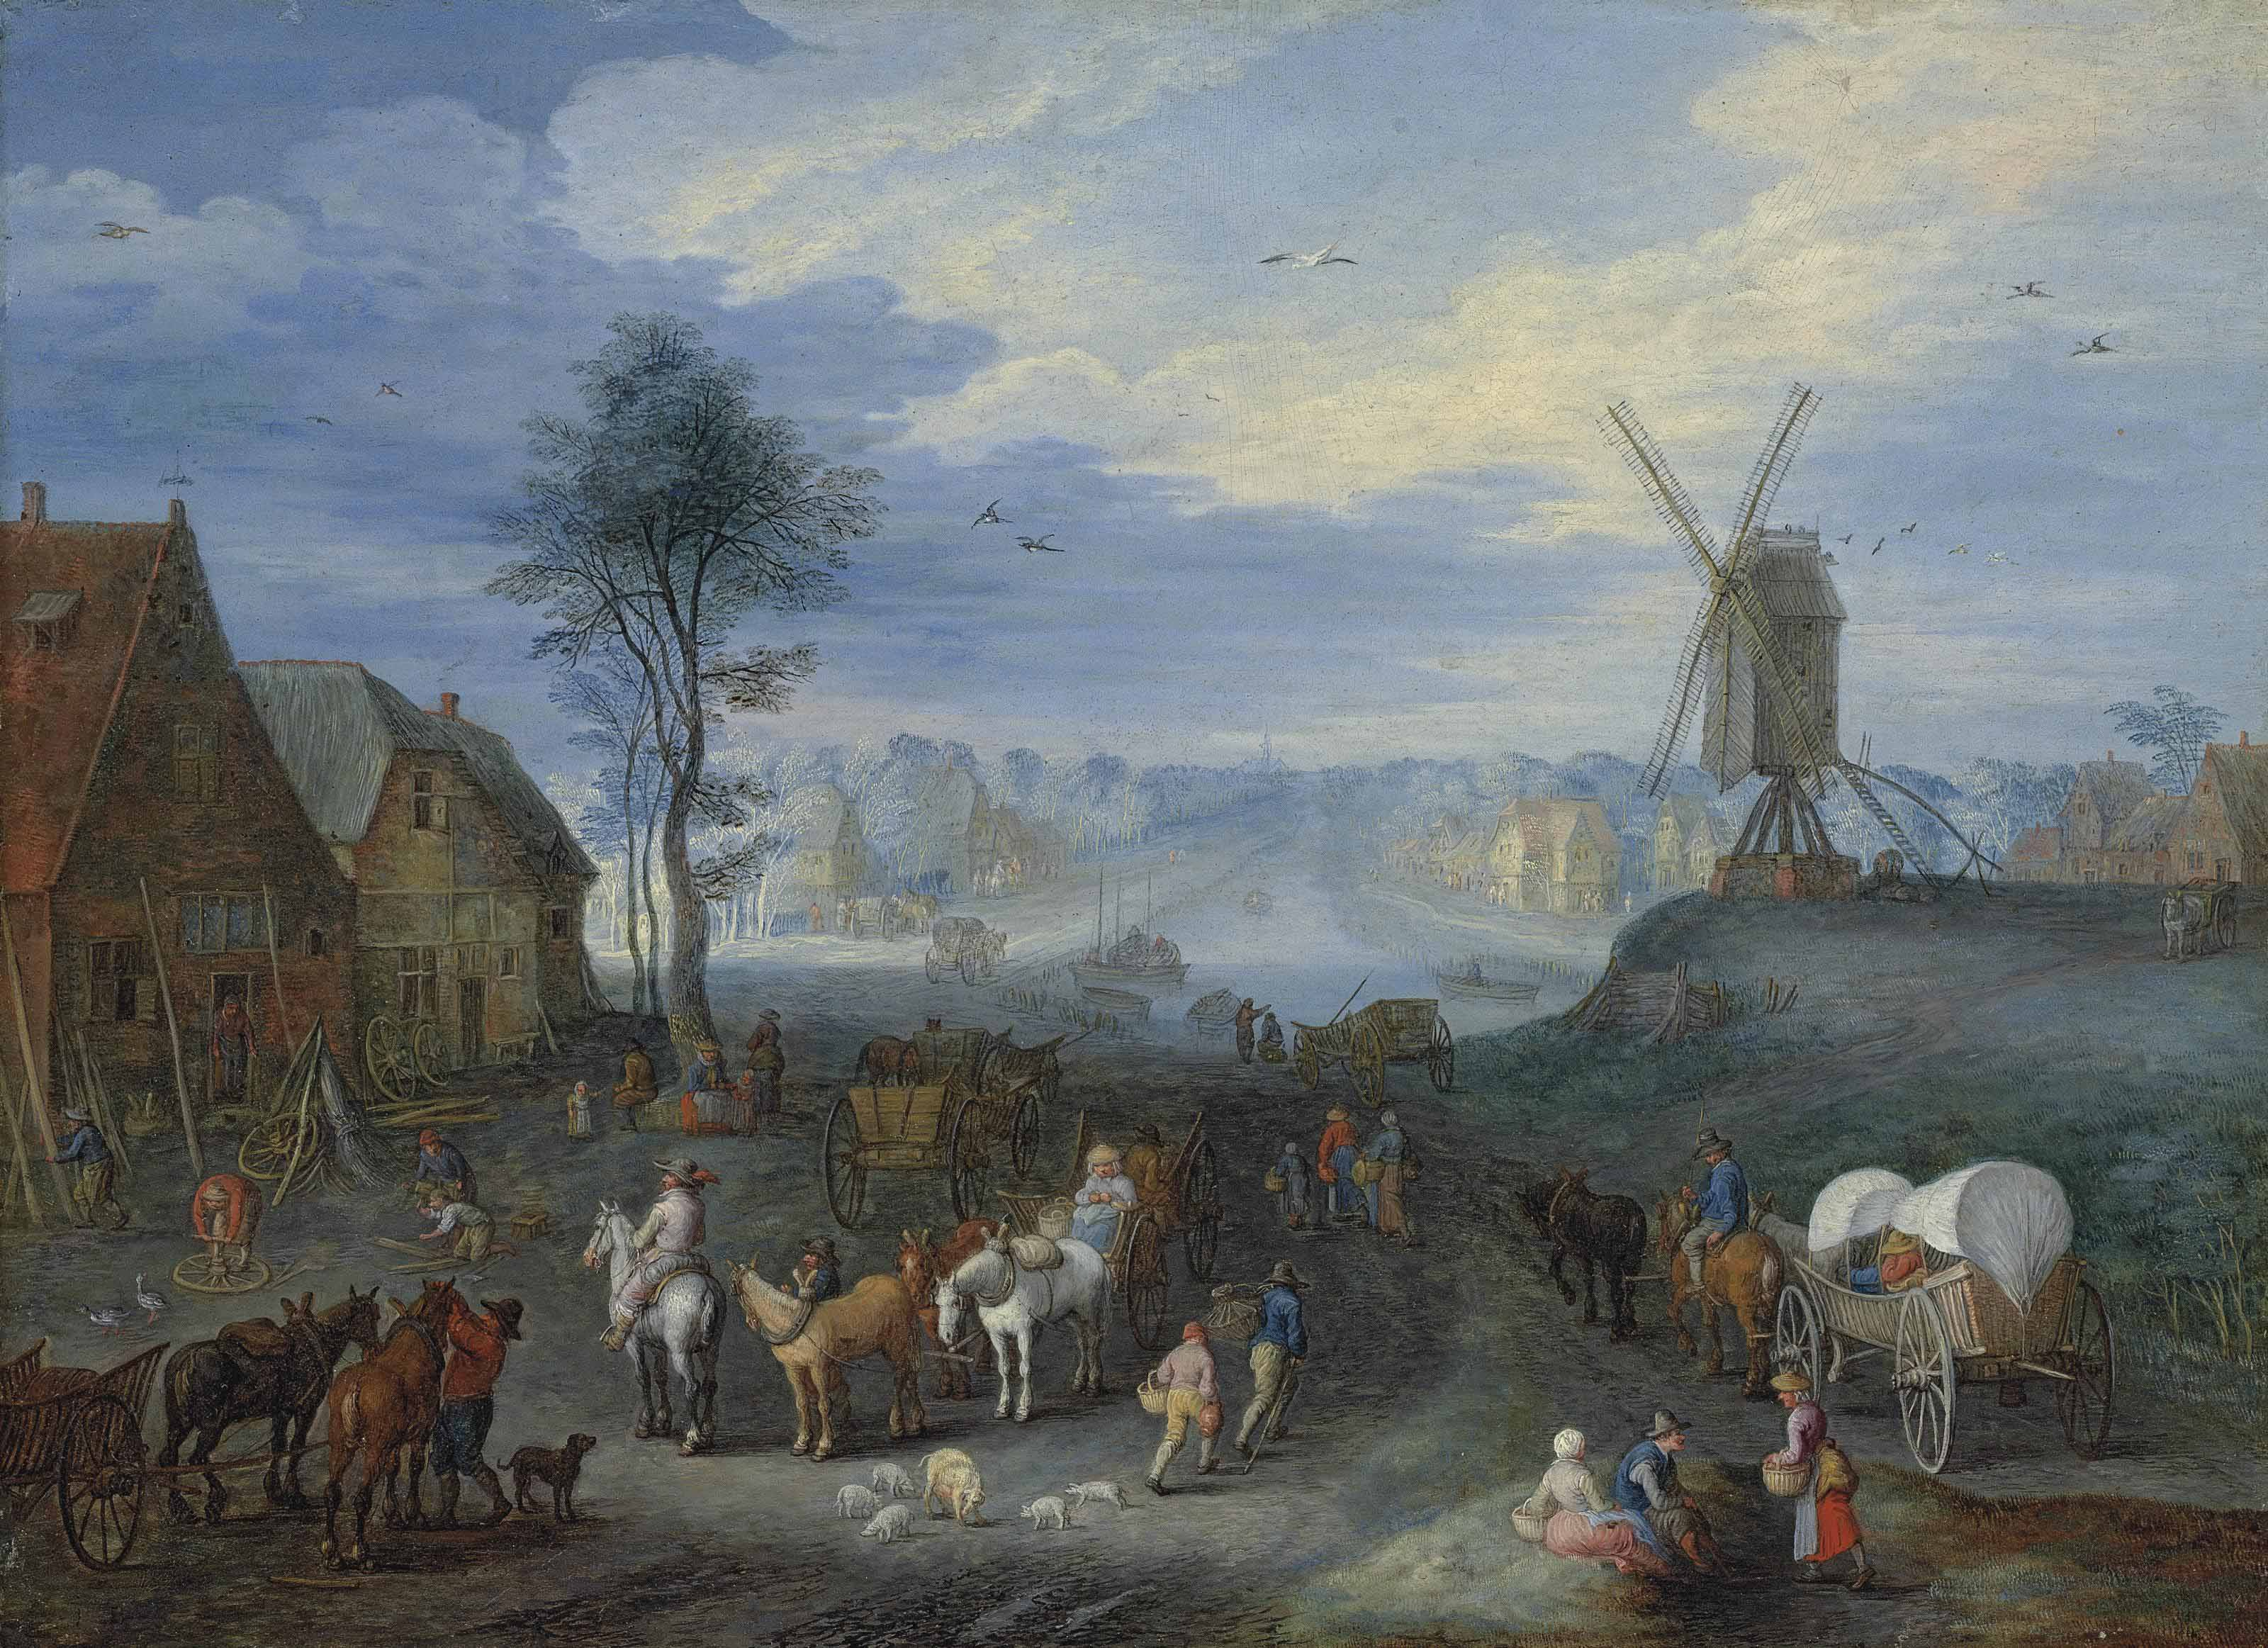 A village with a windmill, figures with horsedrawn carts in the foreground, a canal and a church beyond